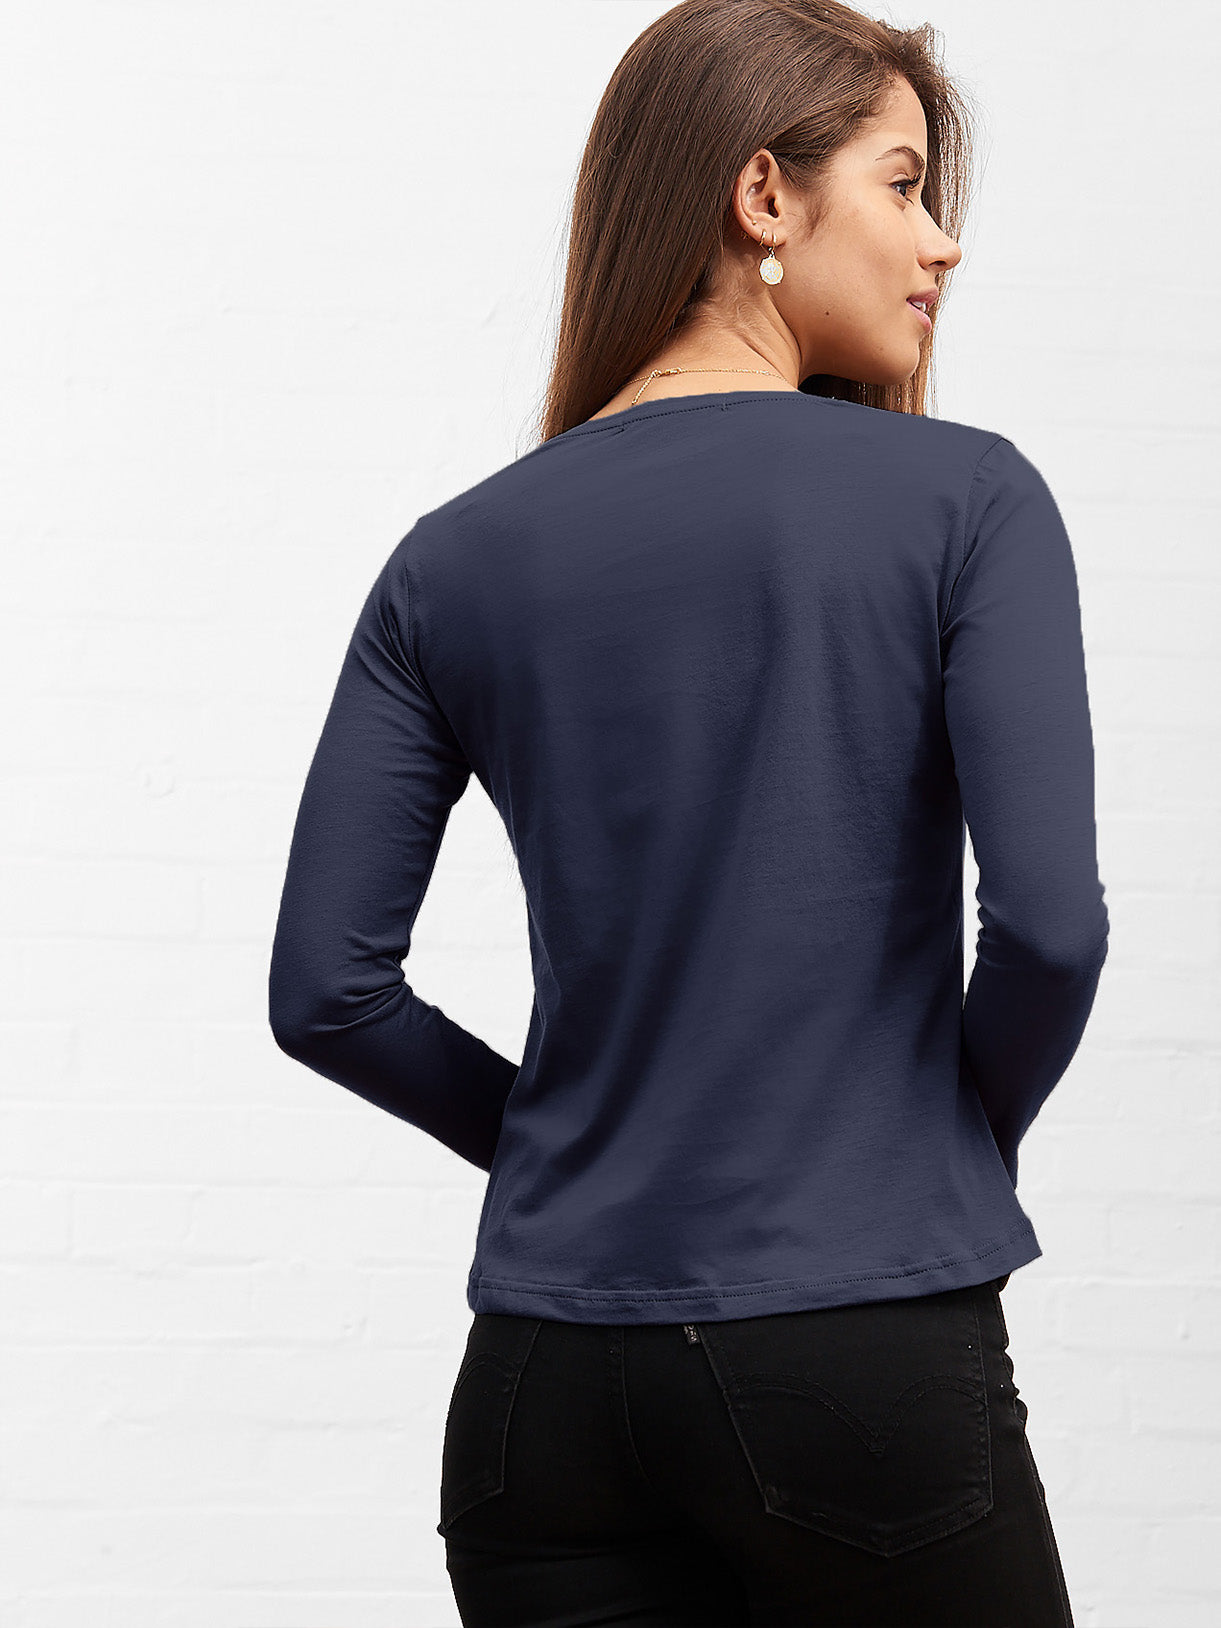 Women's Long Sleeve V Neck Tee Deep Navy